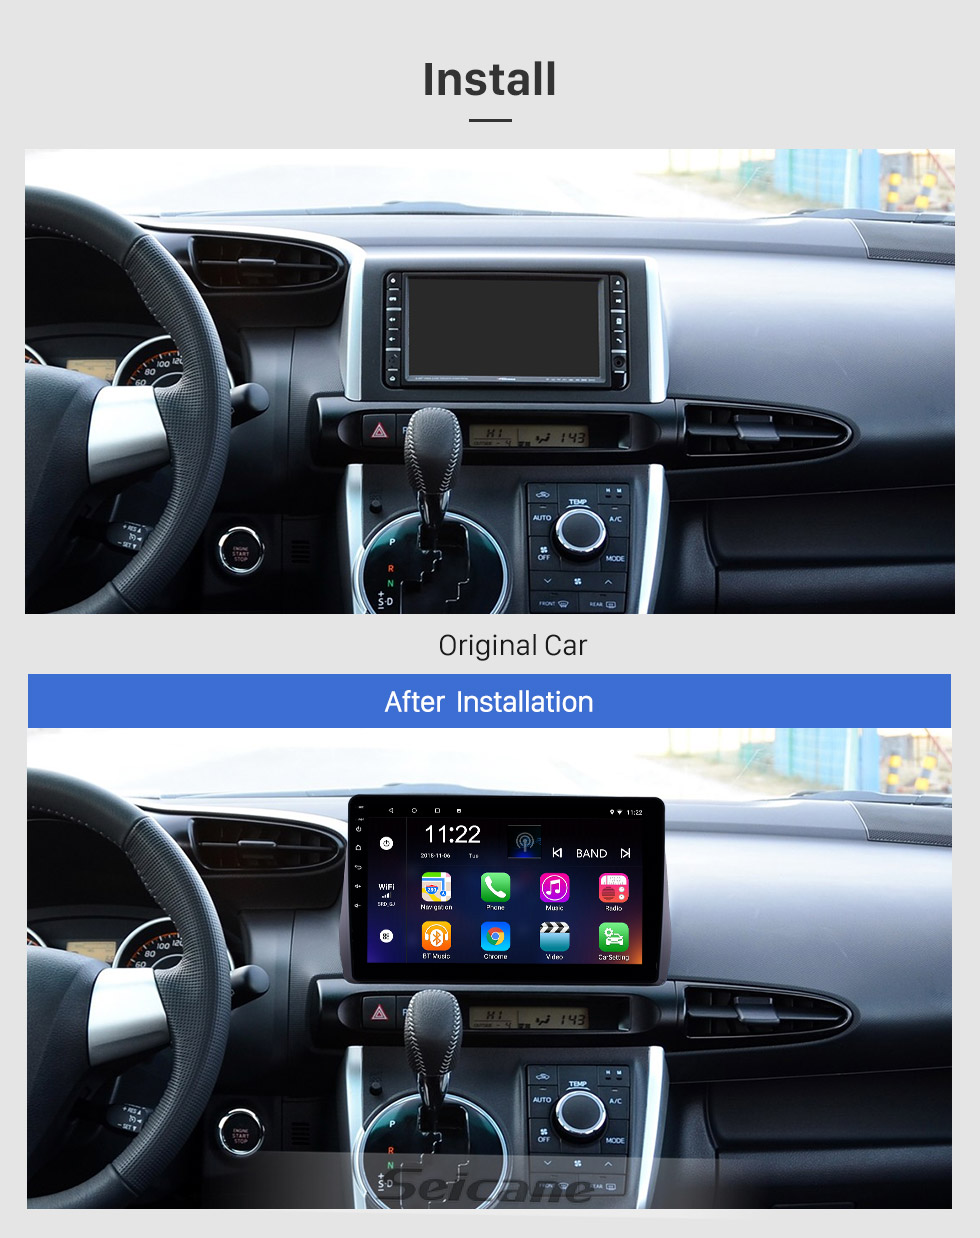 Seicane 10.1 inch Android 8.1 GPS Navigation Radio for 2009-2012 Toyota Wish with HD Touchscreen Bluetooth USB support Carplay TPMS